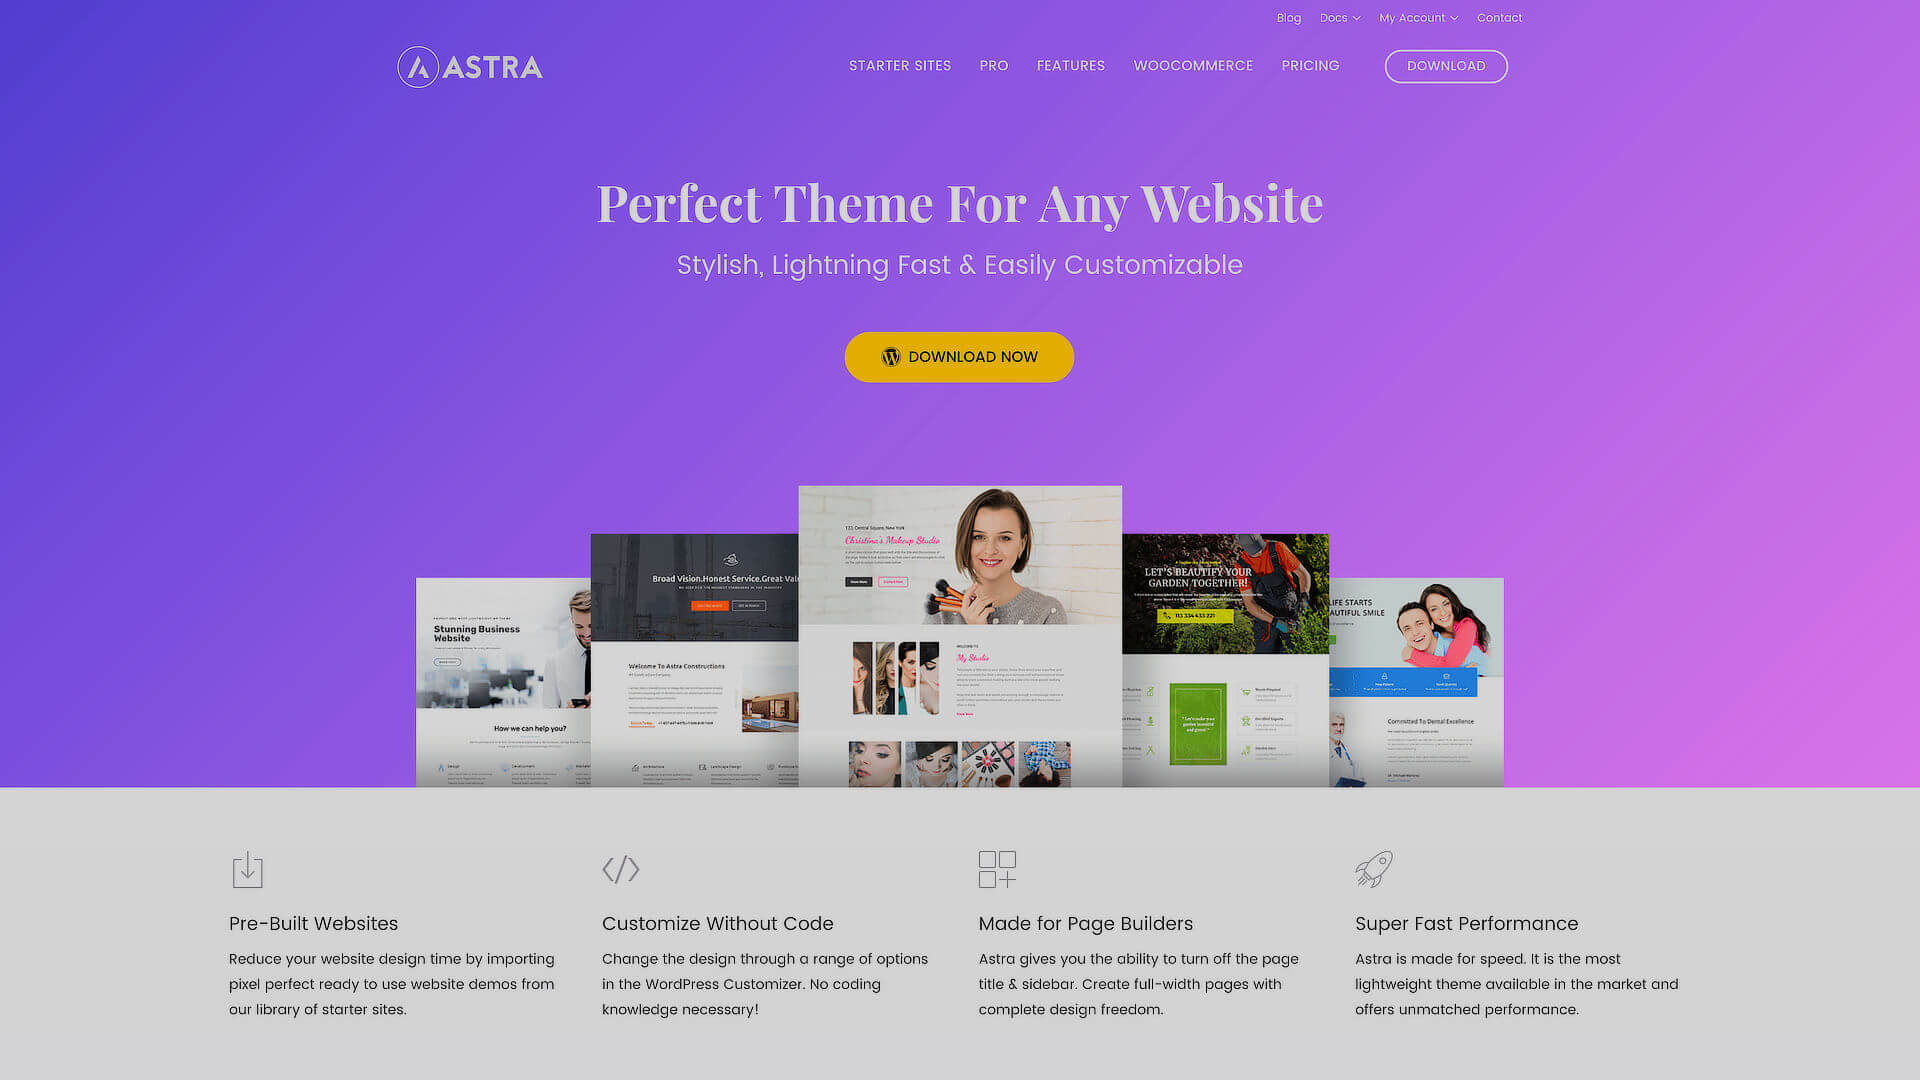 Astra WordPress Theme Pro: it's not just a theme, it's an eco-system